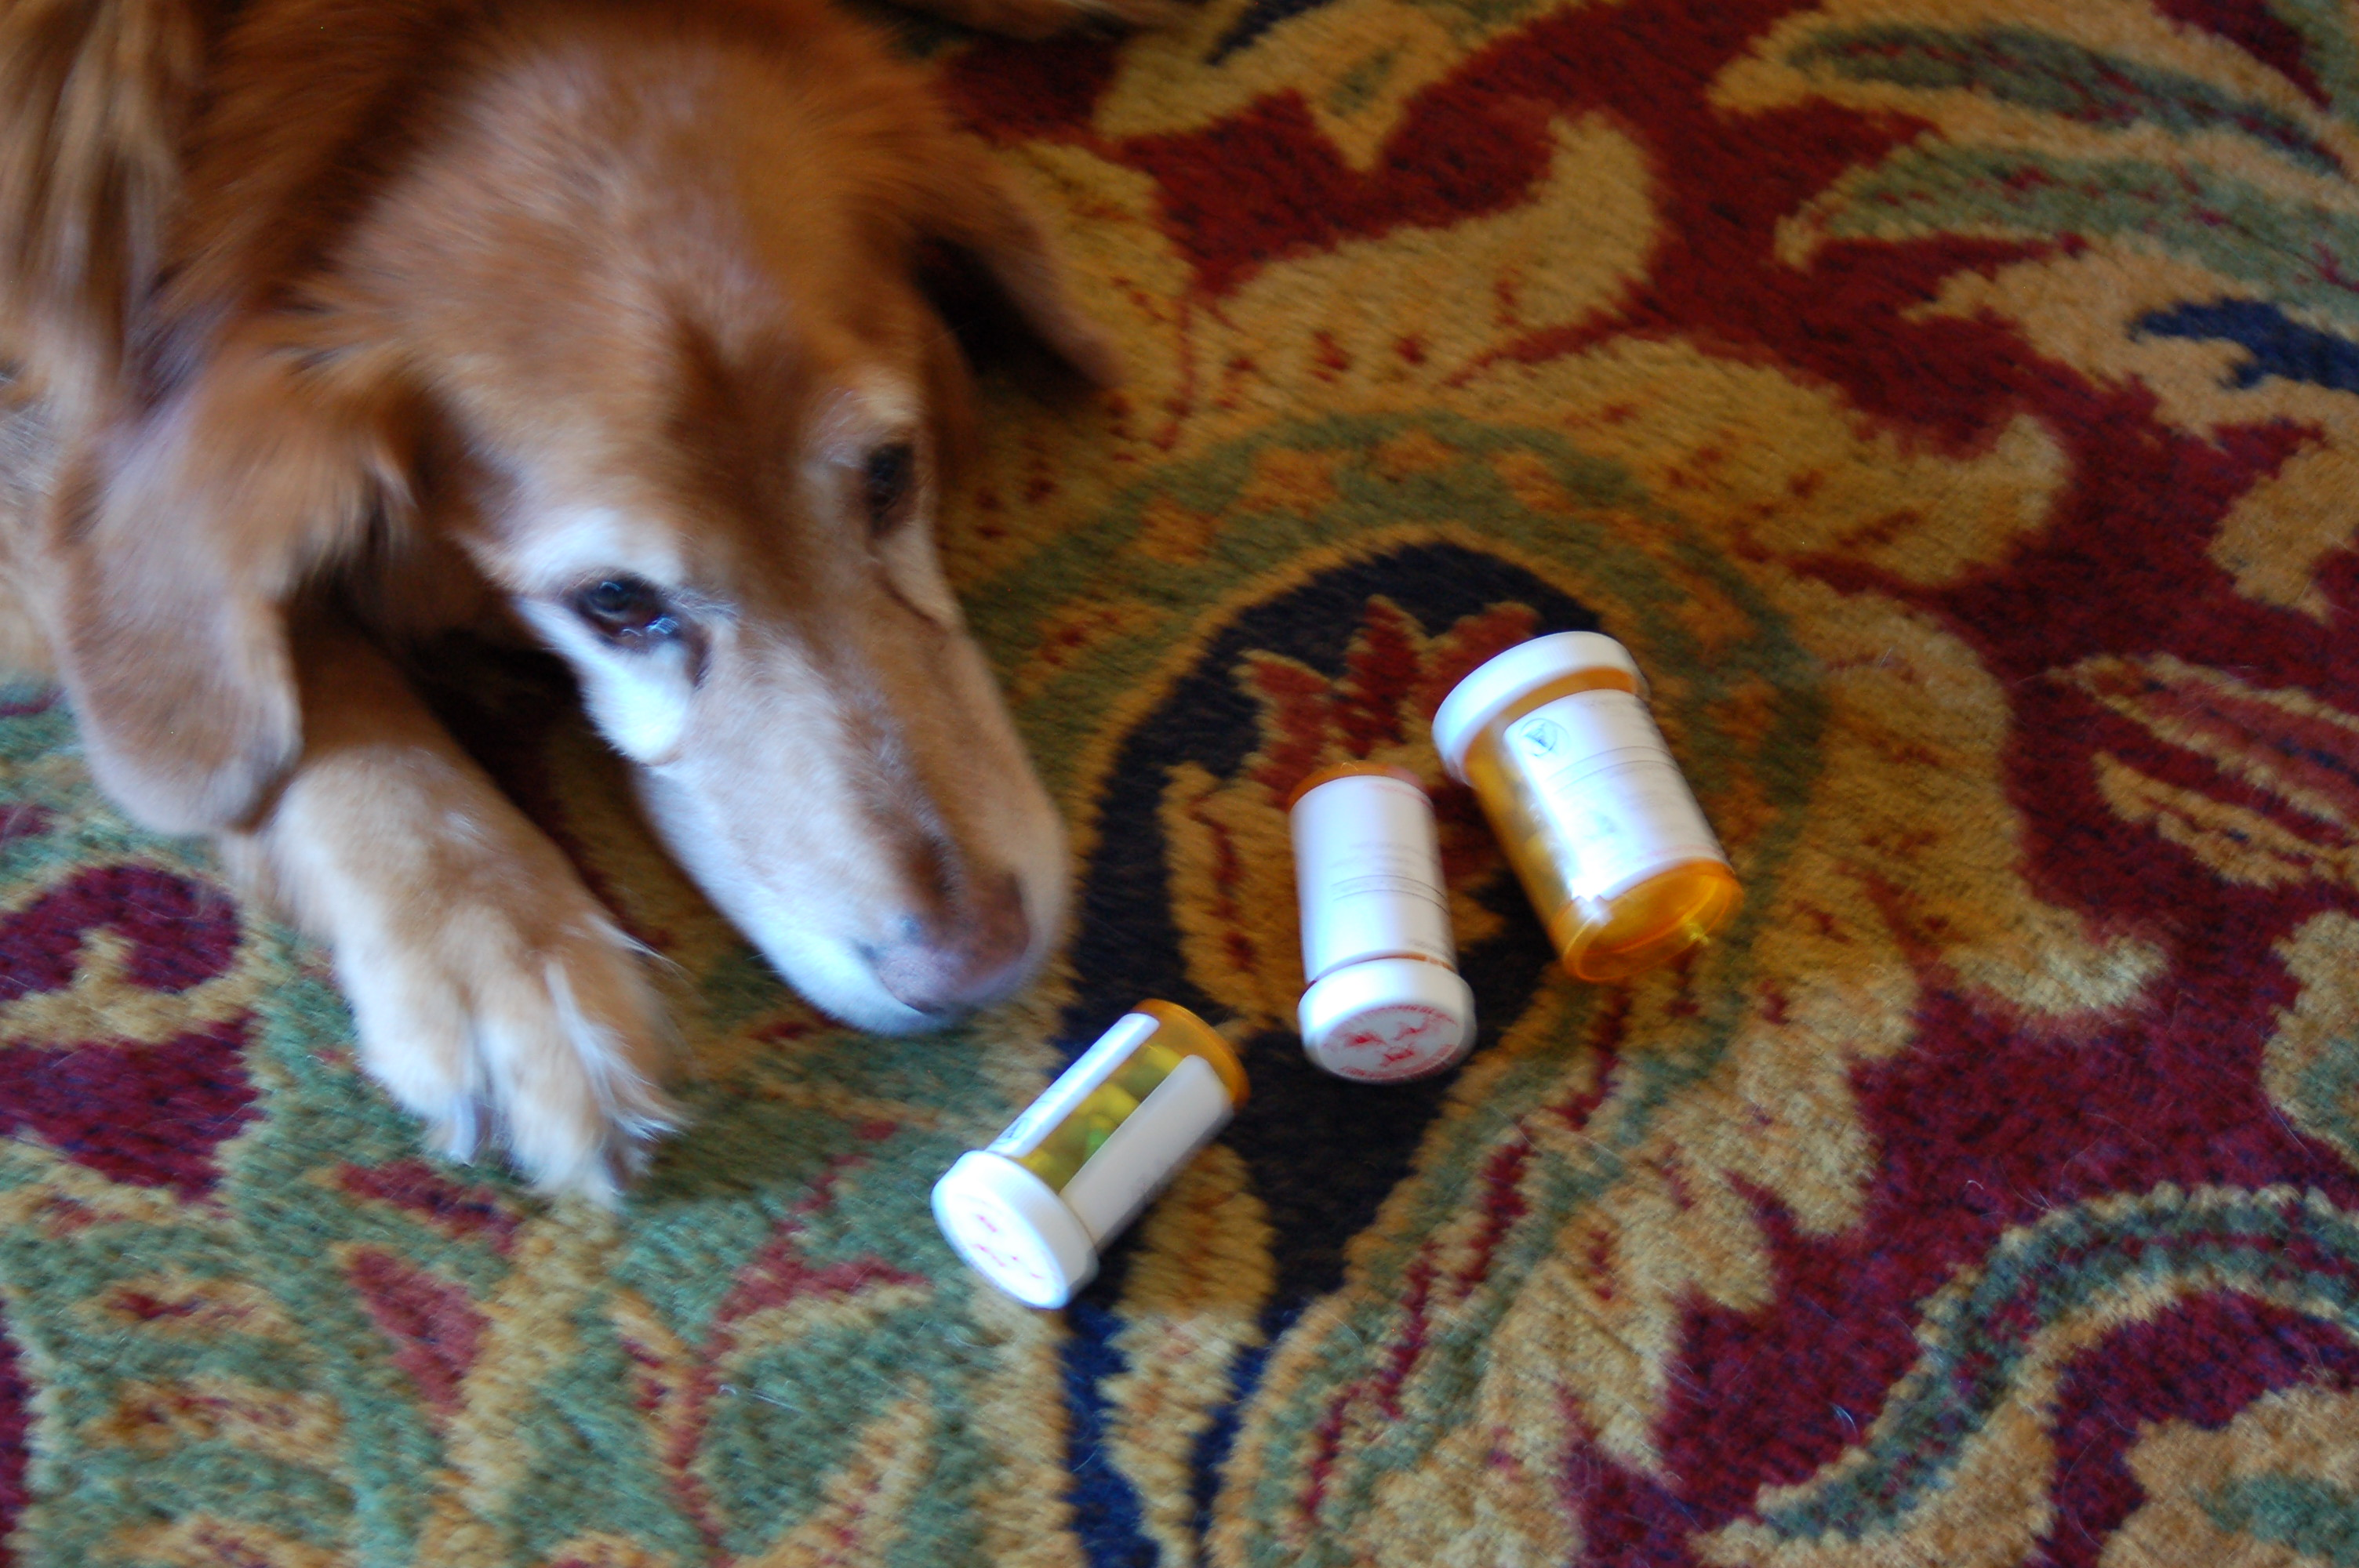 My pill-resistant dog